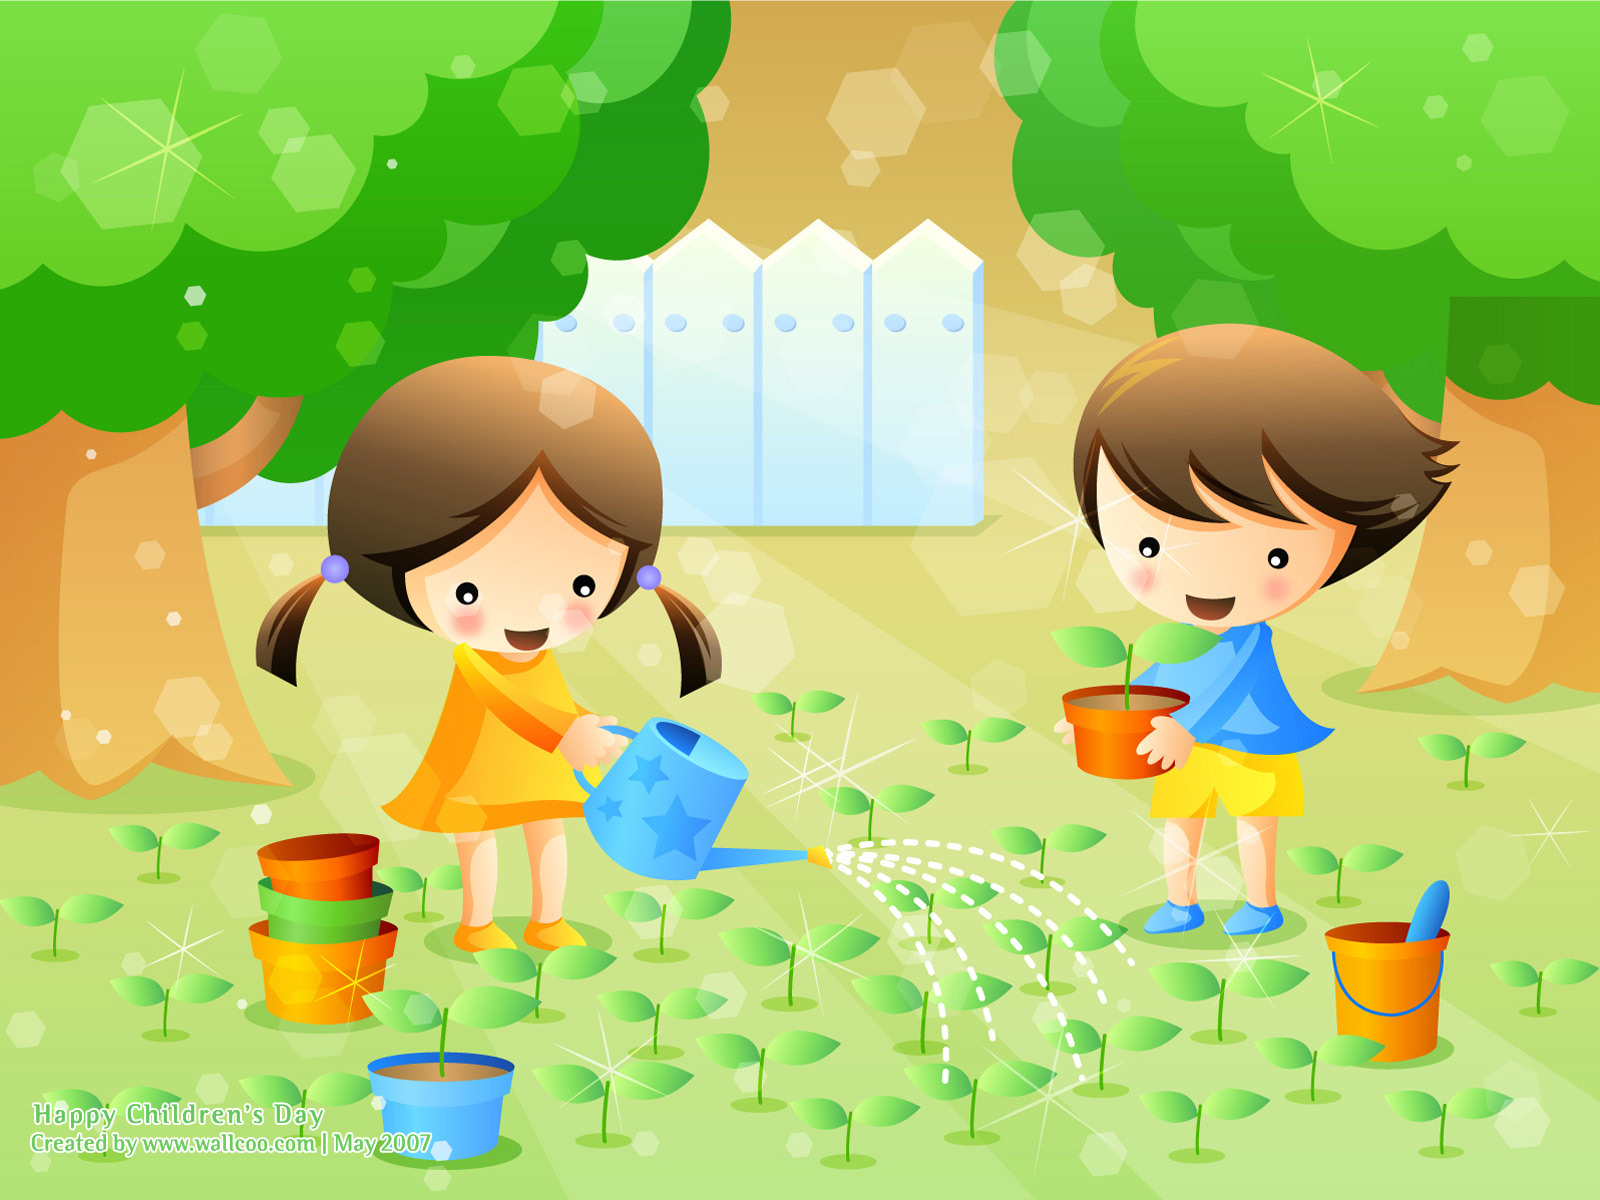 PicturesPool: Children's Day Wallpaper Greetings | Kids,Fun,Drawing,Art,Cartoon